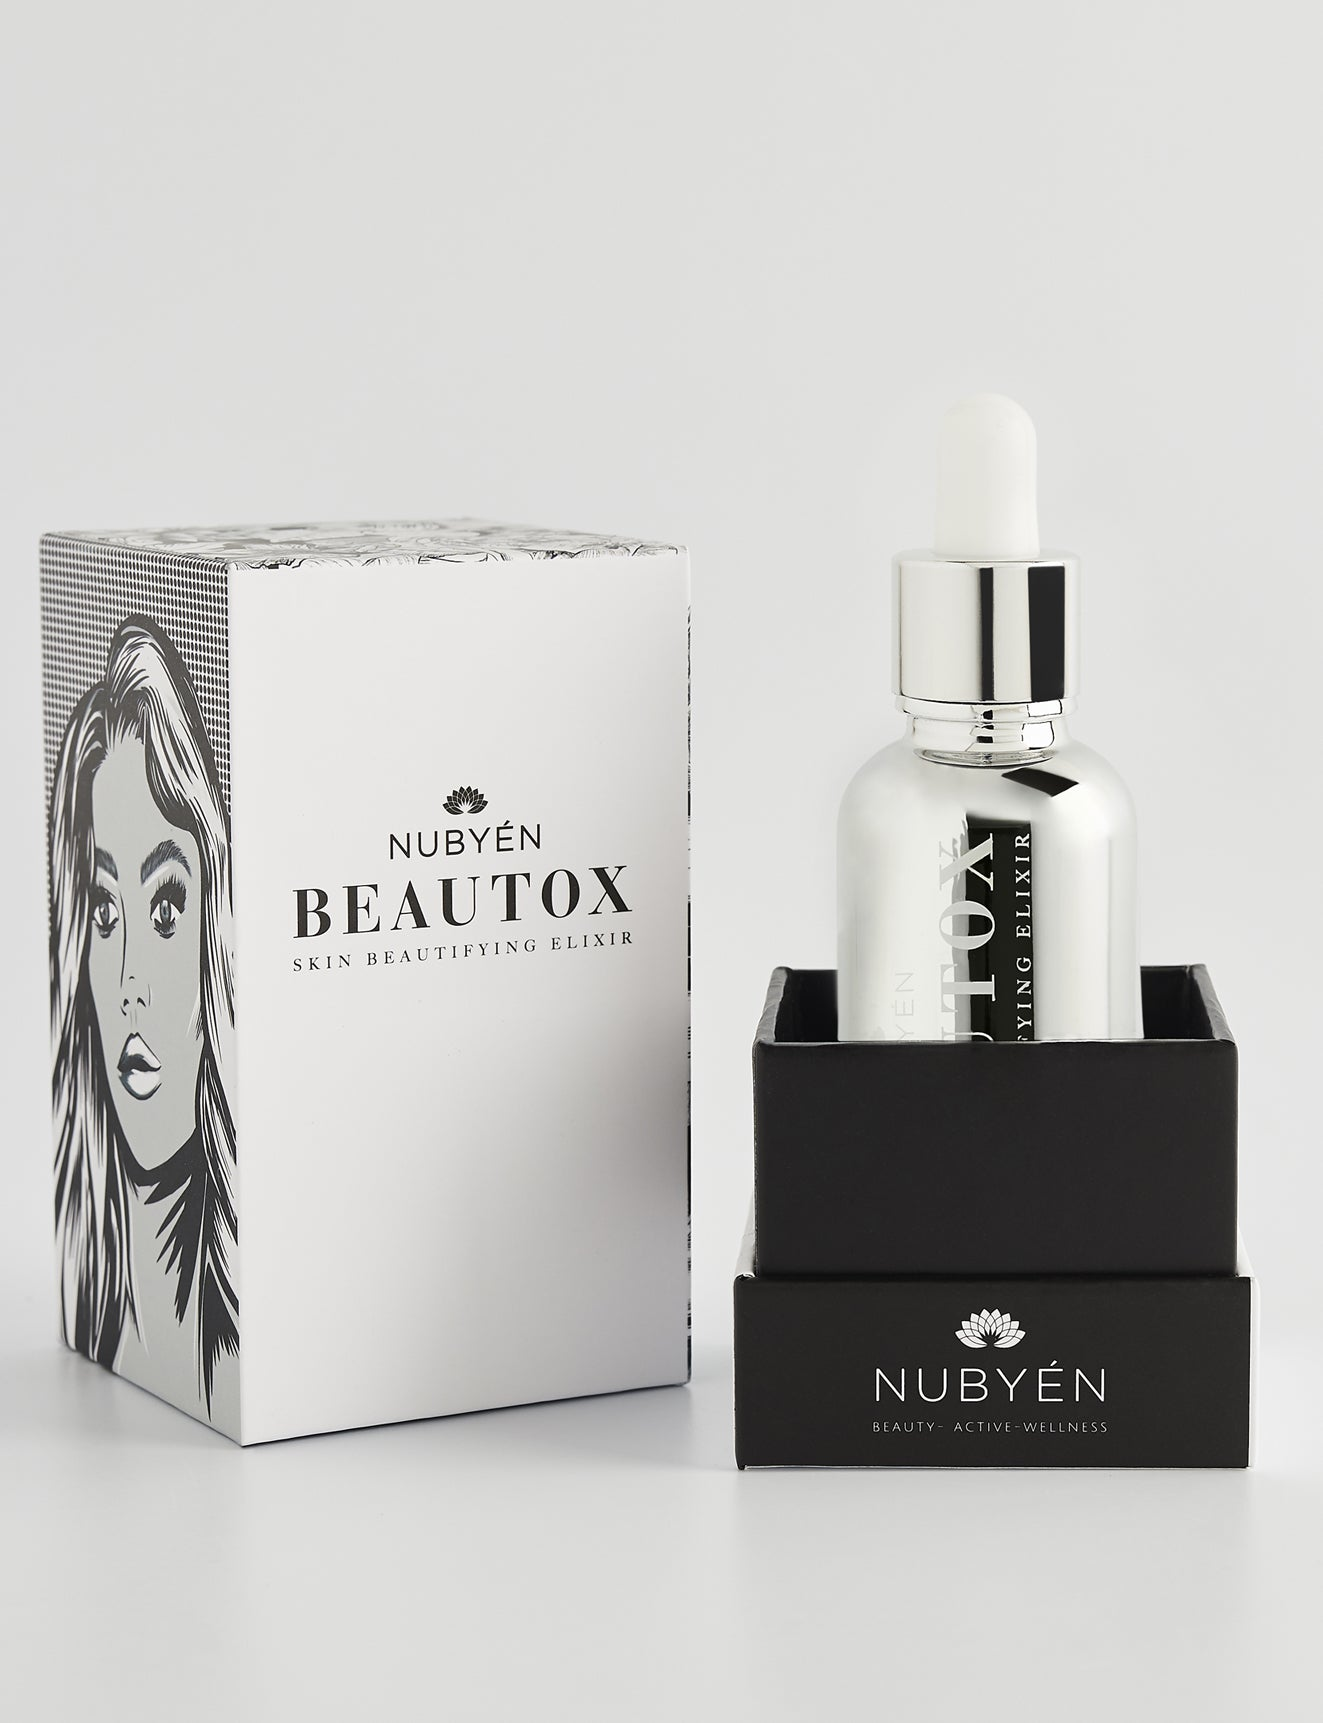 Botox alternative, beautox Botox alternative, beautox nubyen, facial filler alternative , Nubyen cheek filler, hyaluronic acid, collagen, Lip plumping gloss Nubyen Nude, best lip plumper, nubyen cheek filler , cheek filler alternative, nubyen lip plumper, lip plumping gloss, best lip plumper, collagen hyaluronic acid, best lip plumping lipgloss, lip filler, full lips, lip injections,facial filler alternative ,  Lip plumping gloss Nubyen Nude, nubyen lip plumper, Nubyen Nude,  filler,